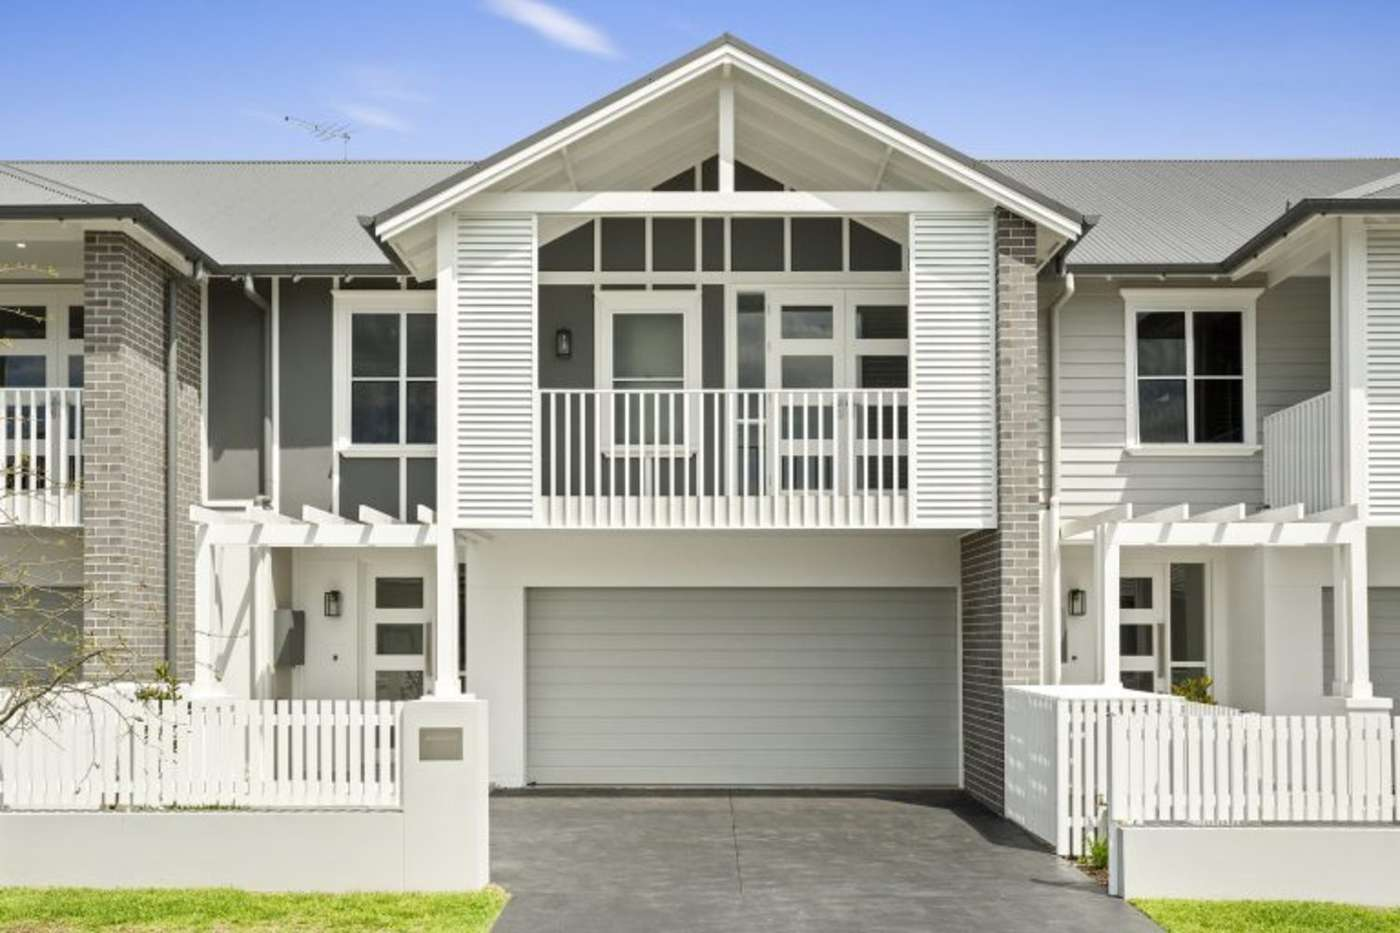 Main view of Homely terrace listing, 15 - 27 Garnsey Way, Oran Park, NSW 2570